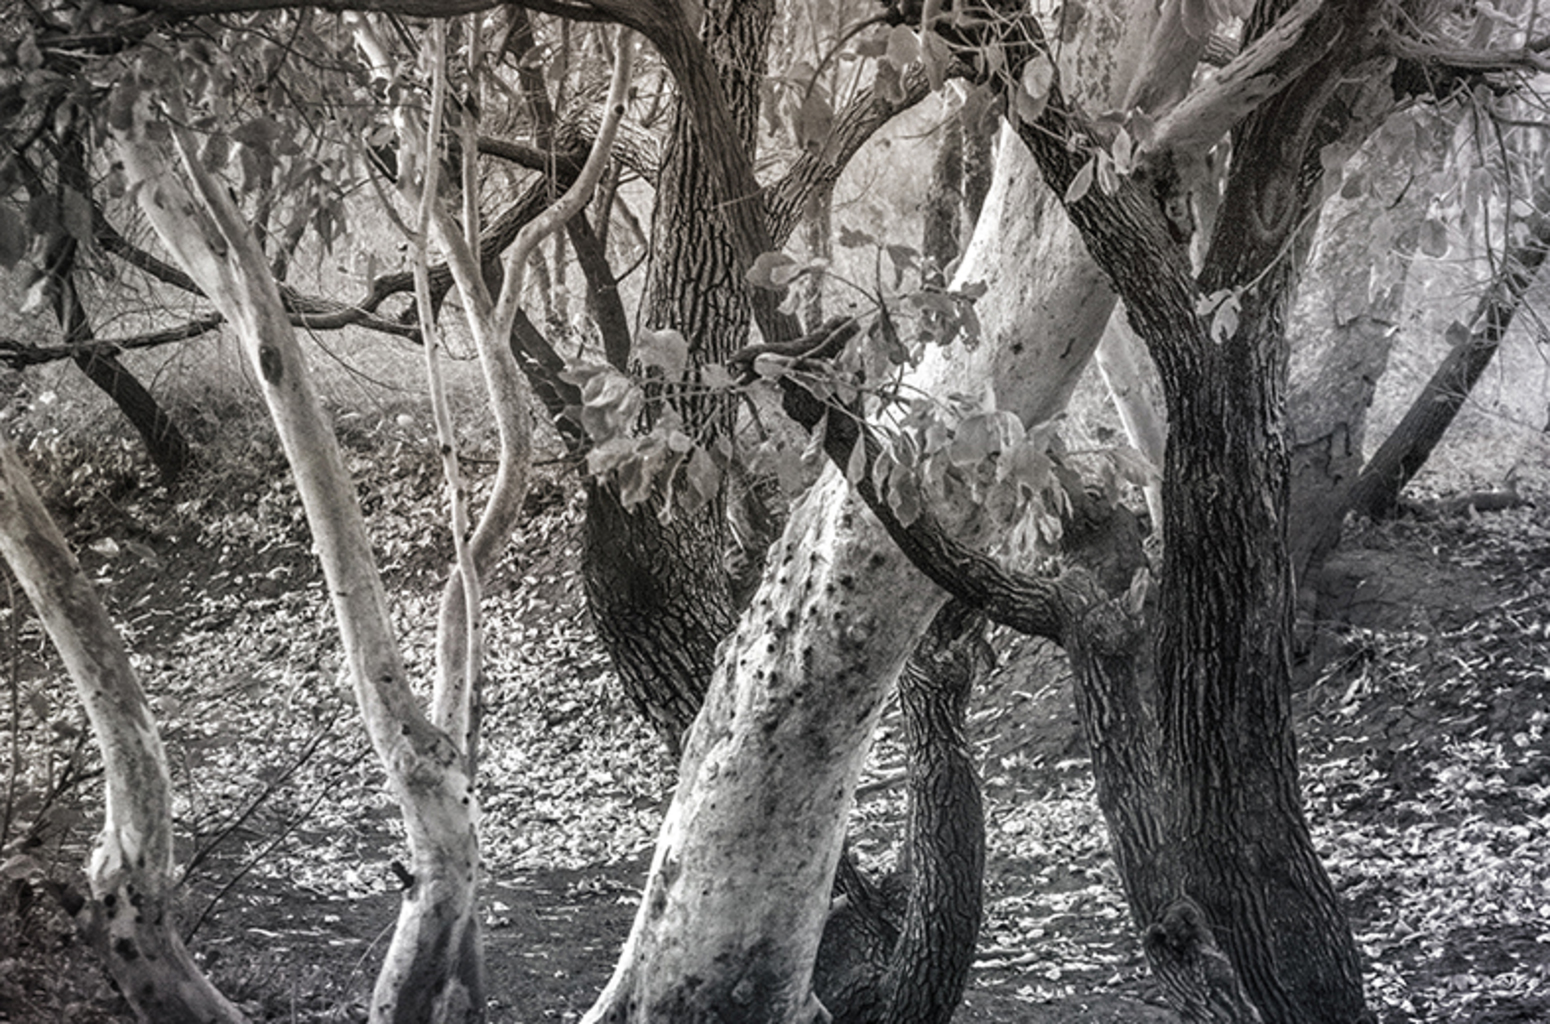 Black Trees, White Trees (Tanami Desert NT, June 2015)